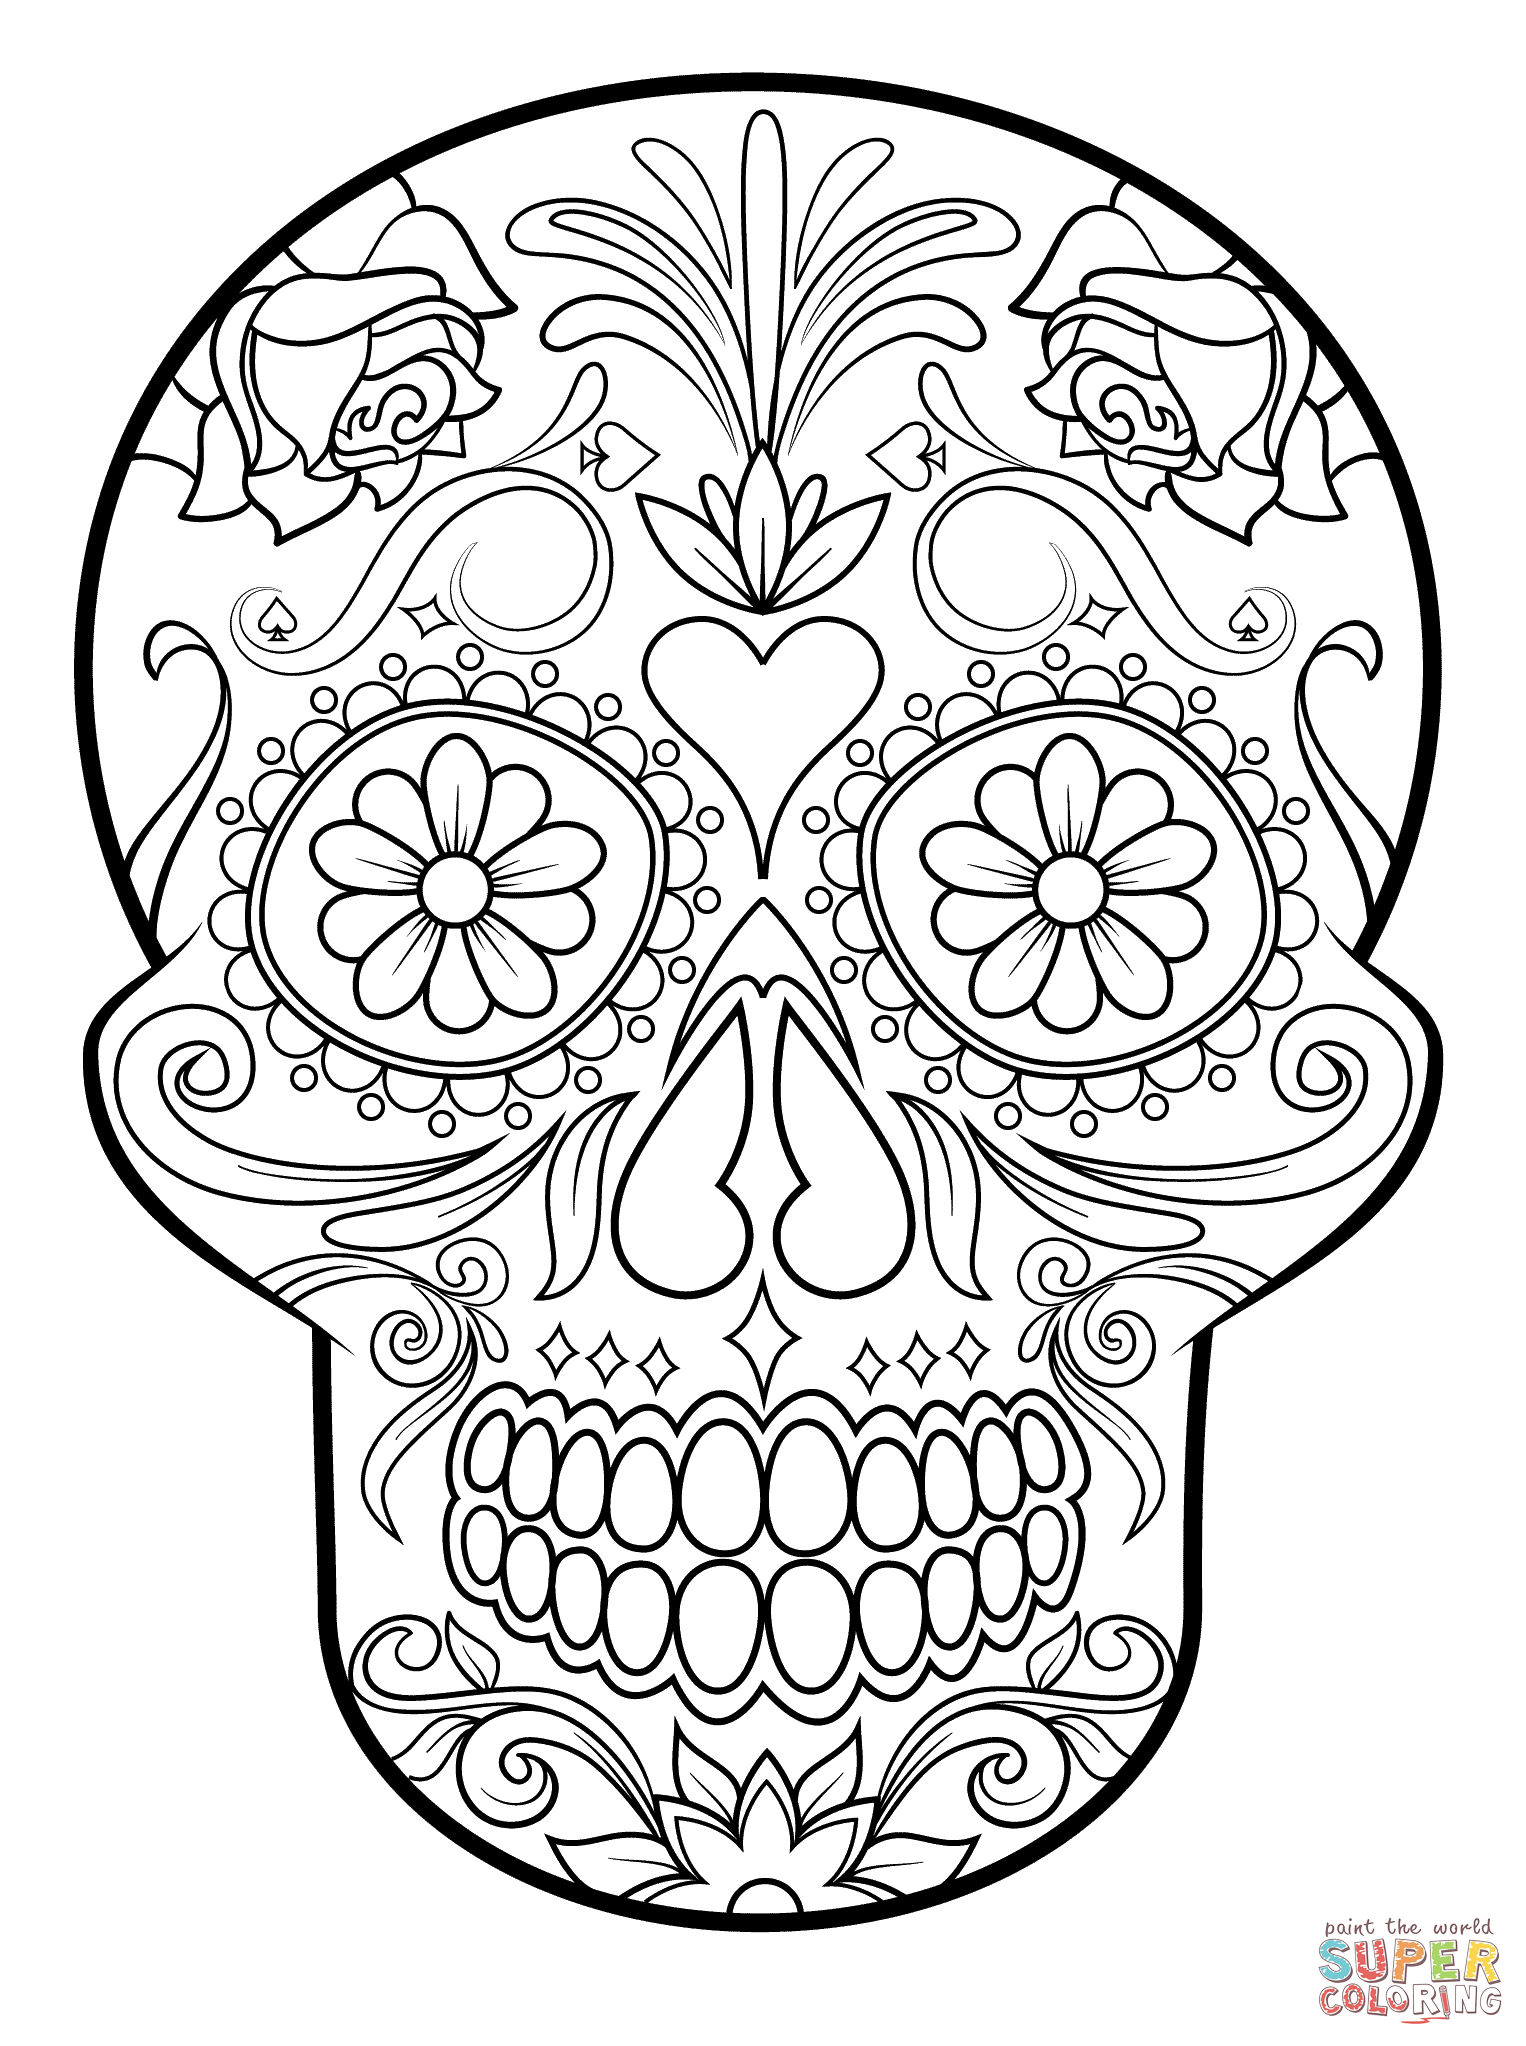 Coloring Pages : Sugar Skull Coloring Page Free Printable Pages For - Free Printable Sugar Skull Coloring Pages